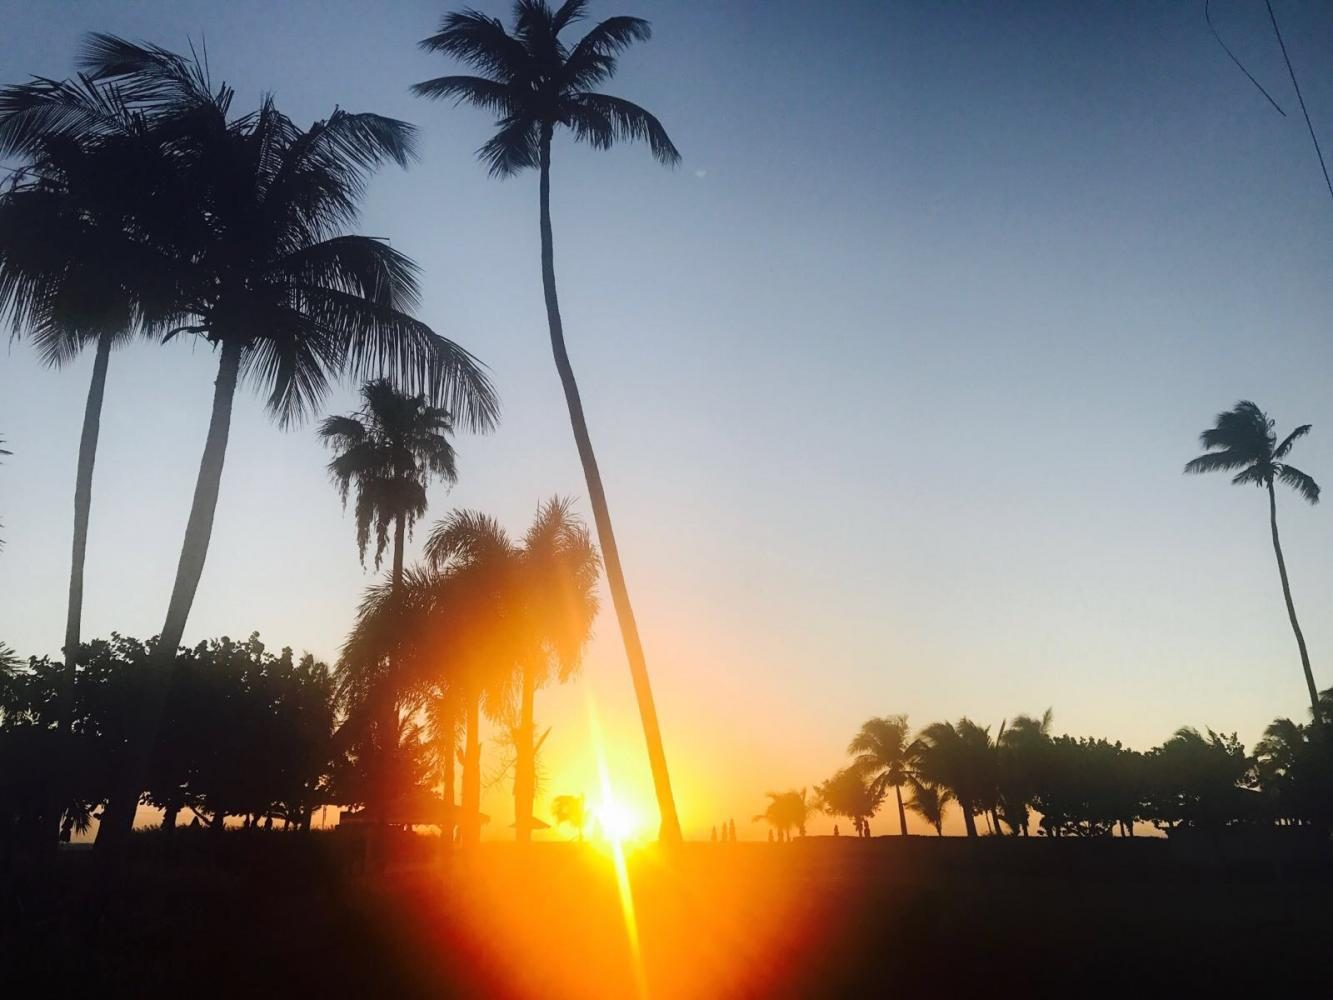 Beautiful sunset in California, with tall palm trees. Taken March 11, 2017.